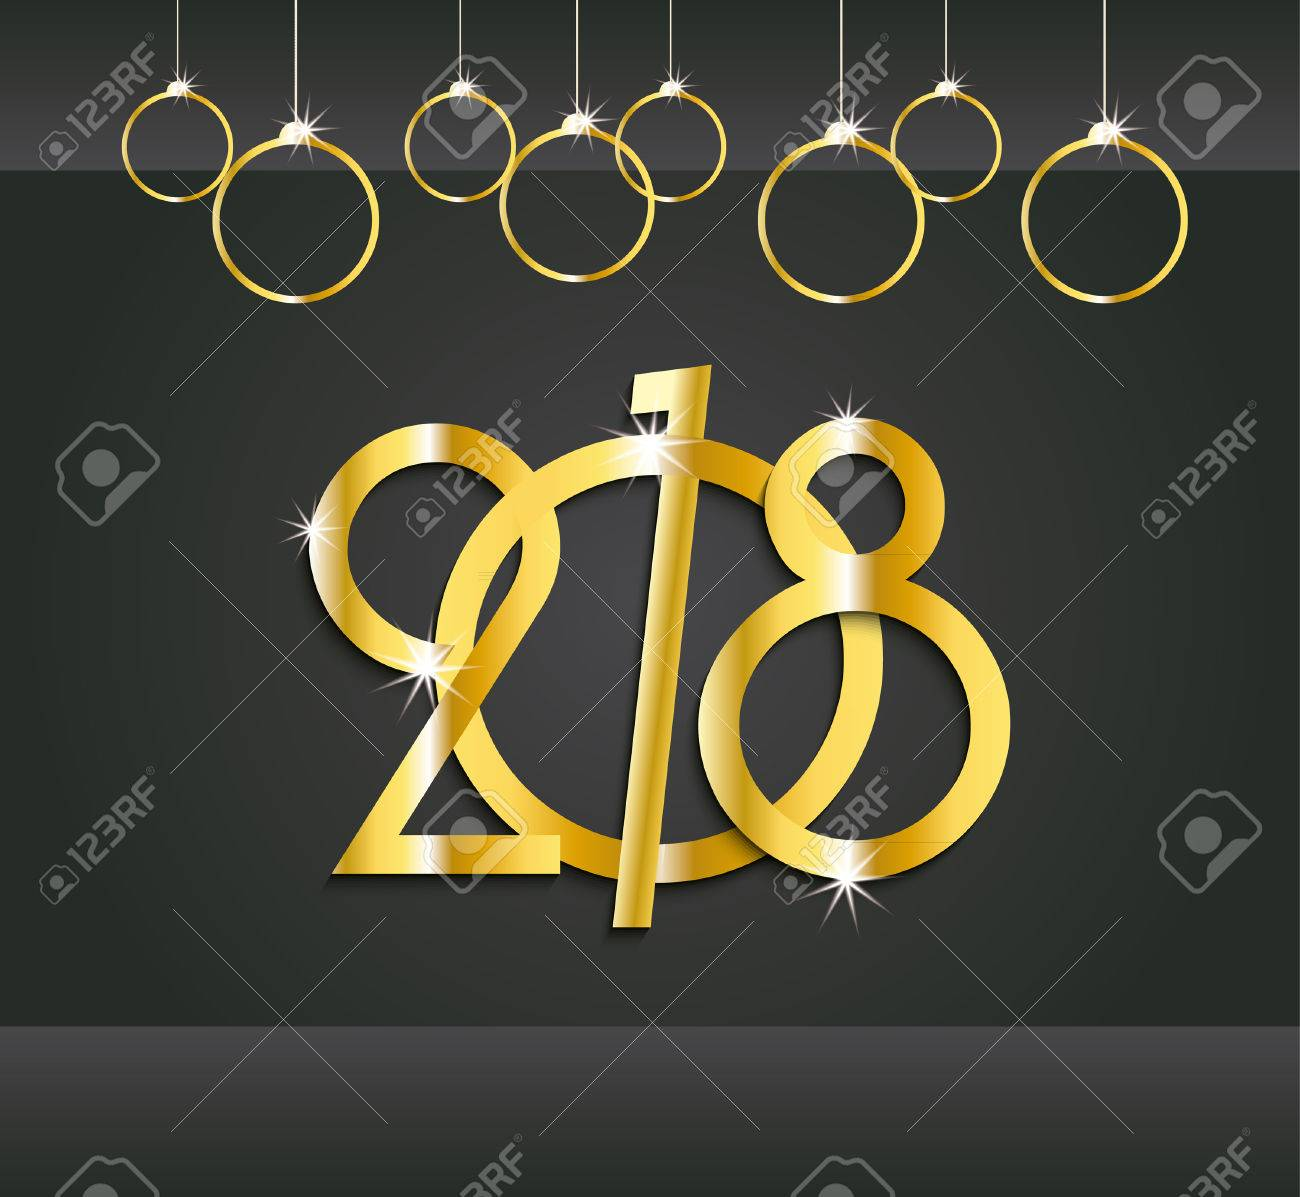 2018 new year or christmas dark background creative design gold 2018 new year or christmas dark background creative design gold numbers for your greetings card kristyandbryce Choice Image